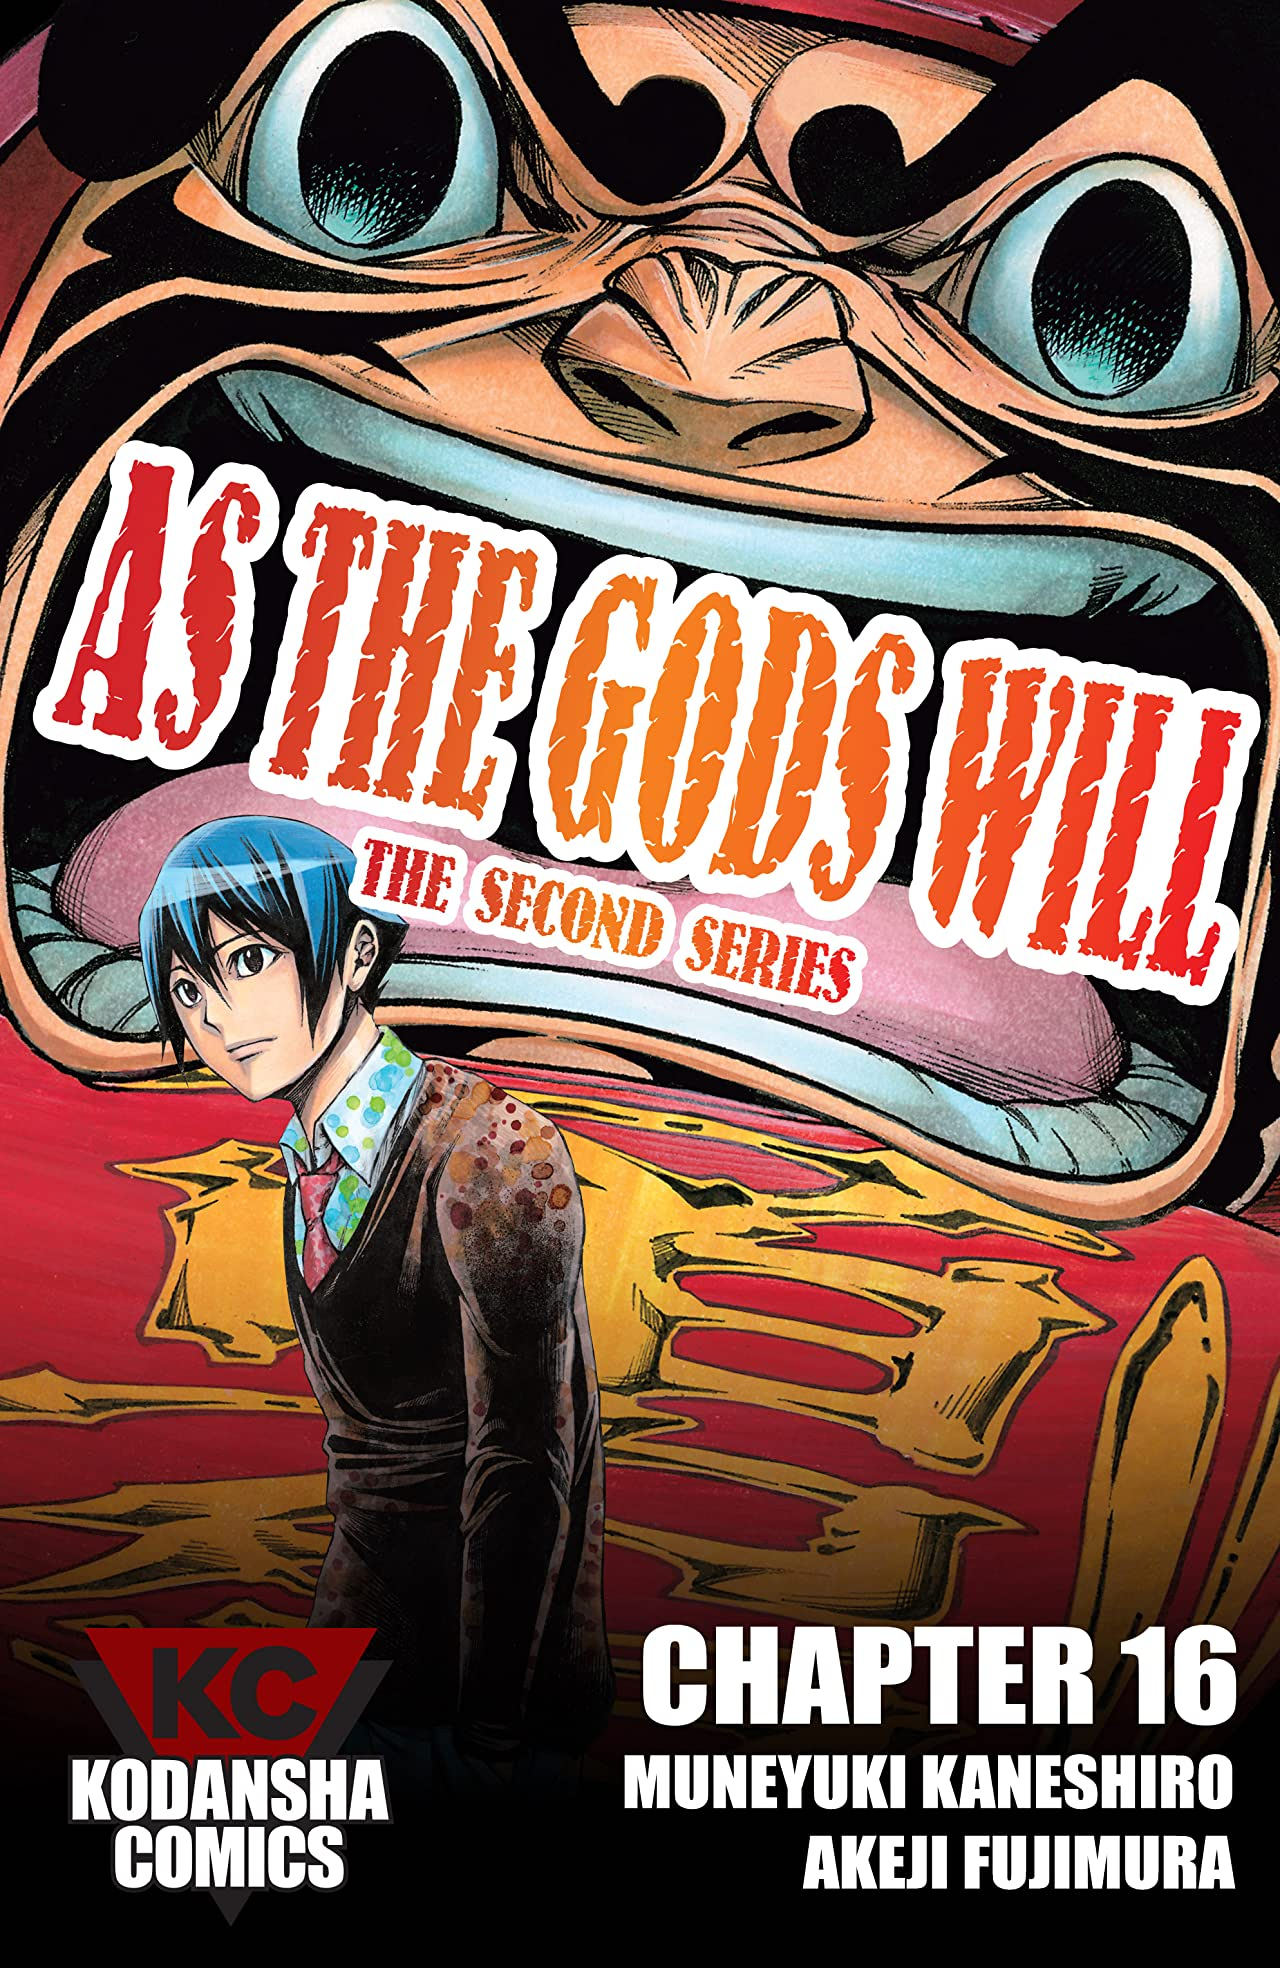 As The Gods Will: The Second Series #16